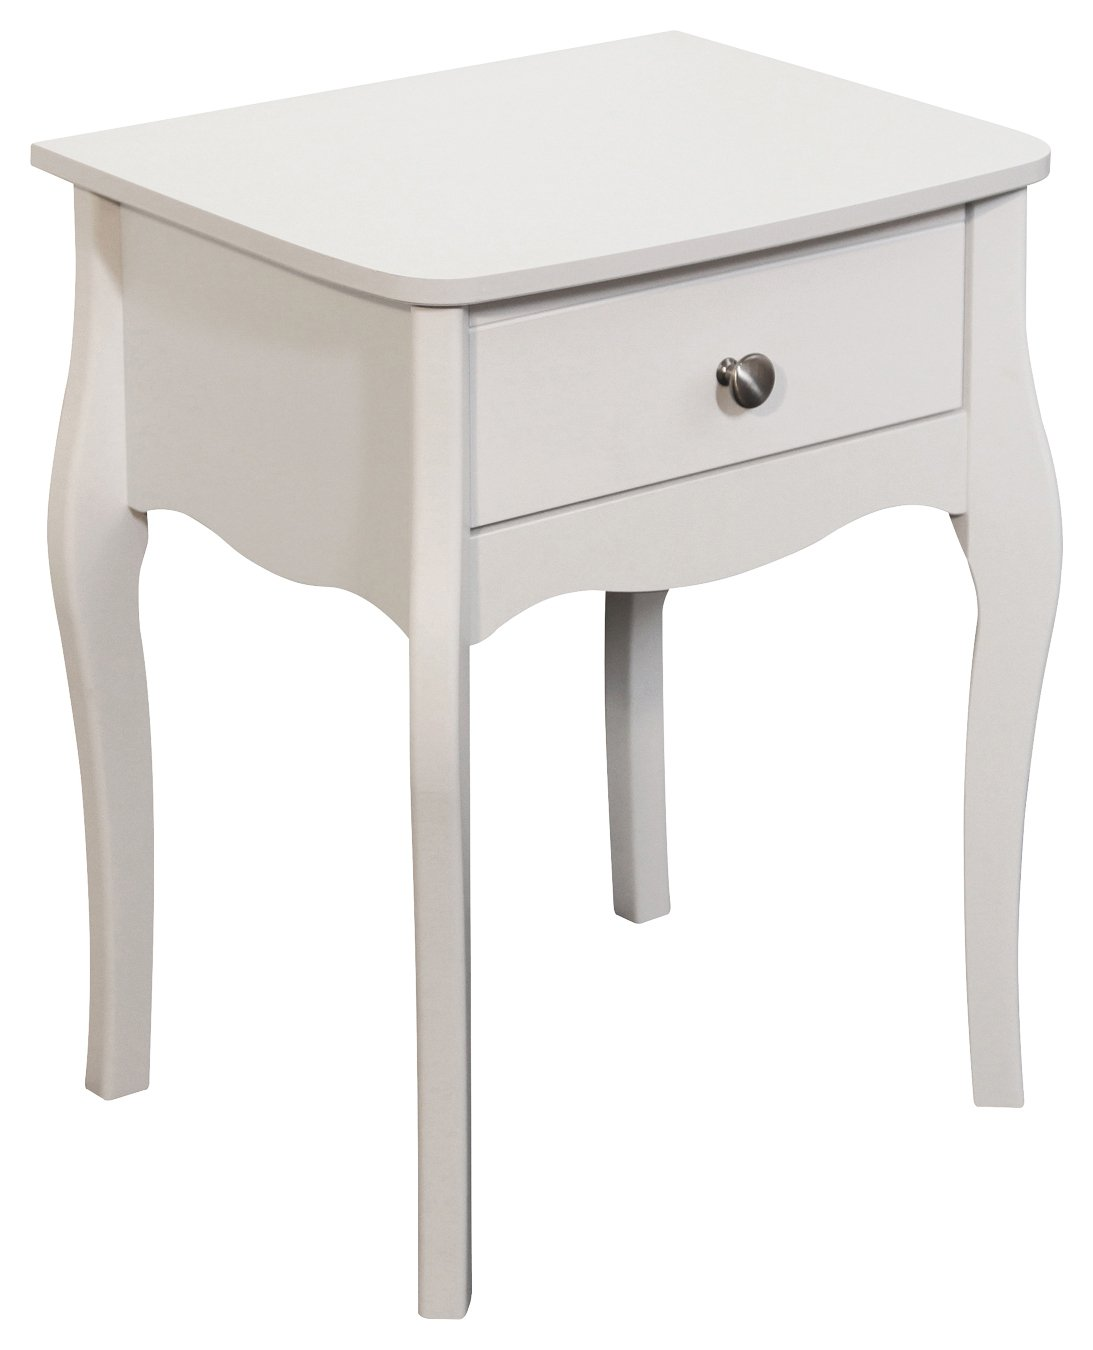 Amelie 1 Drawer Bedside Table - White